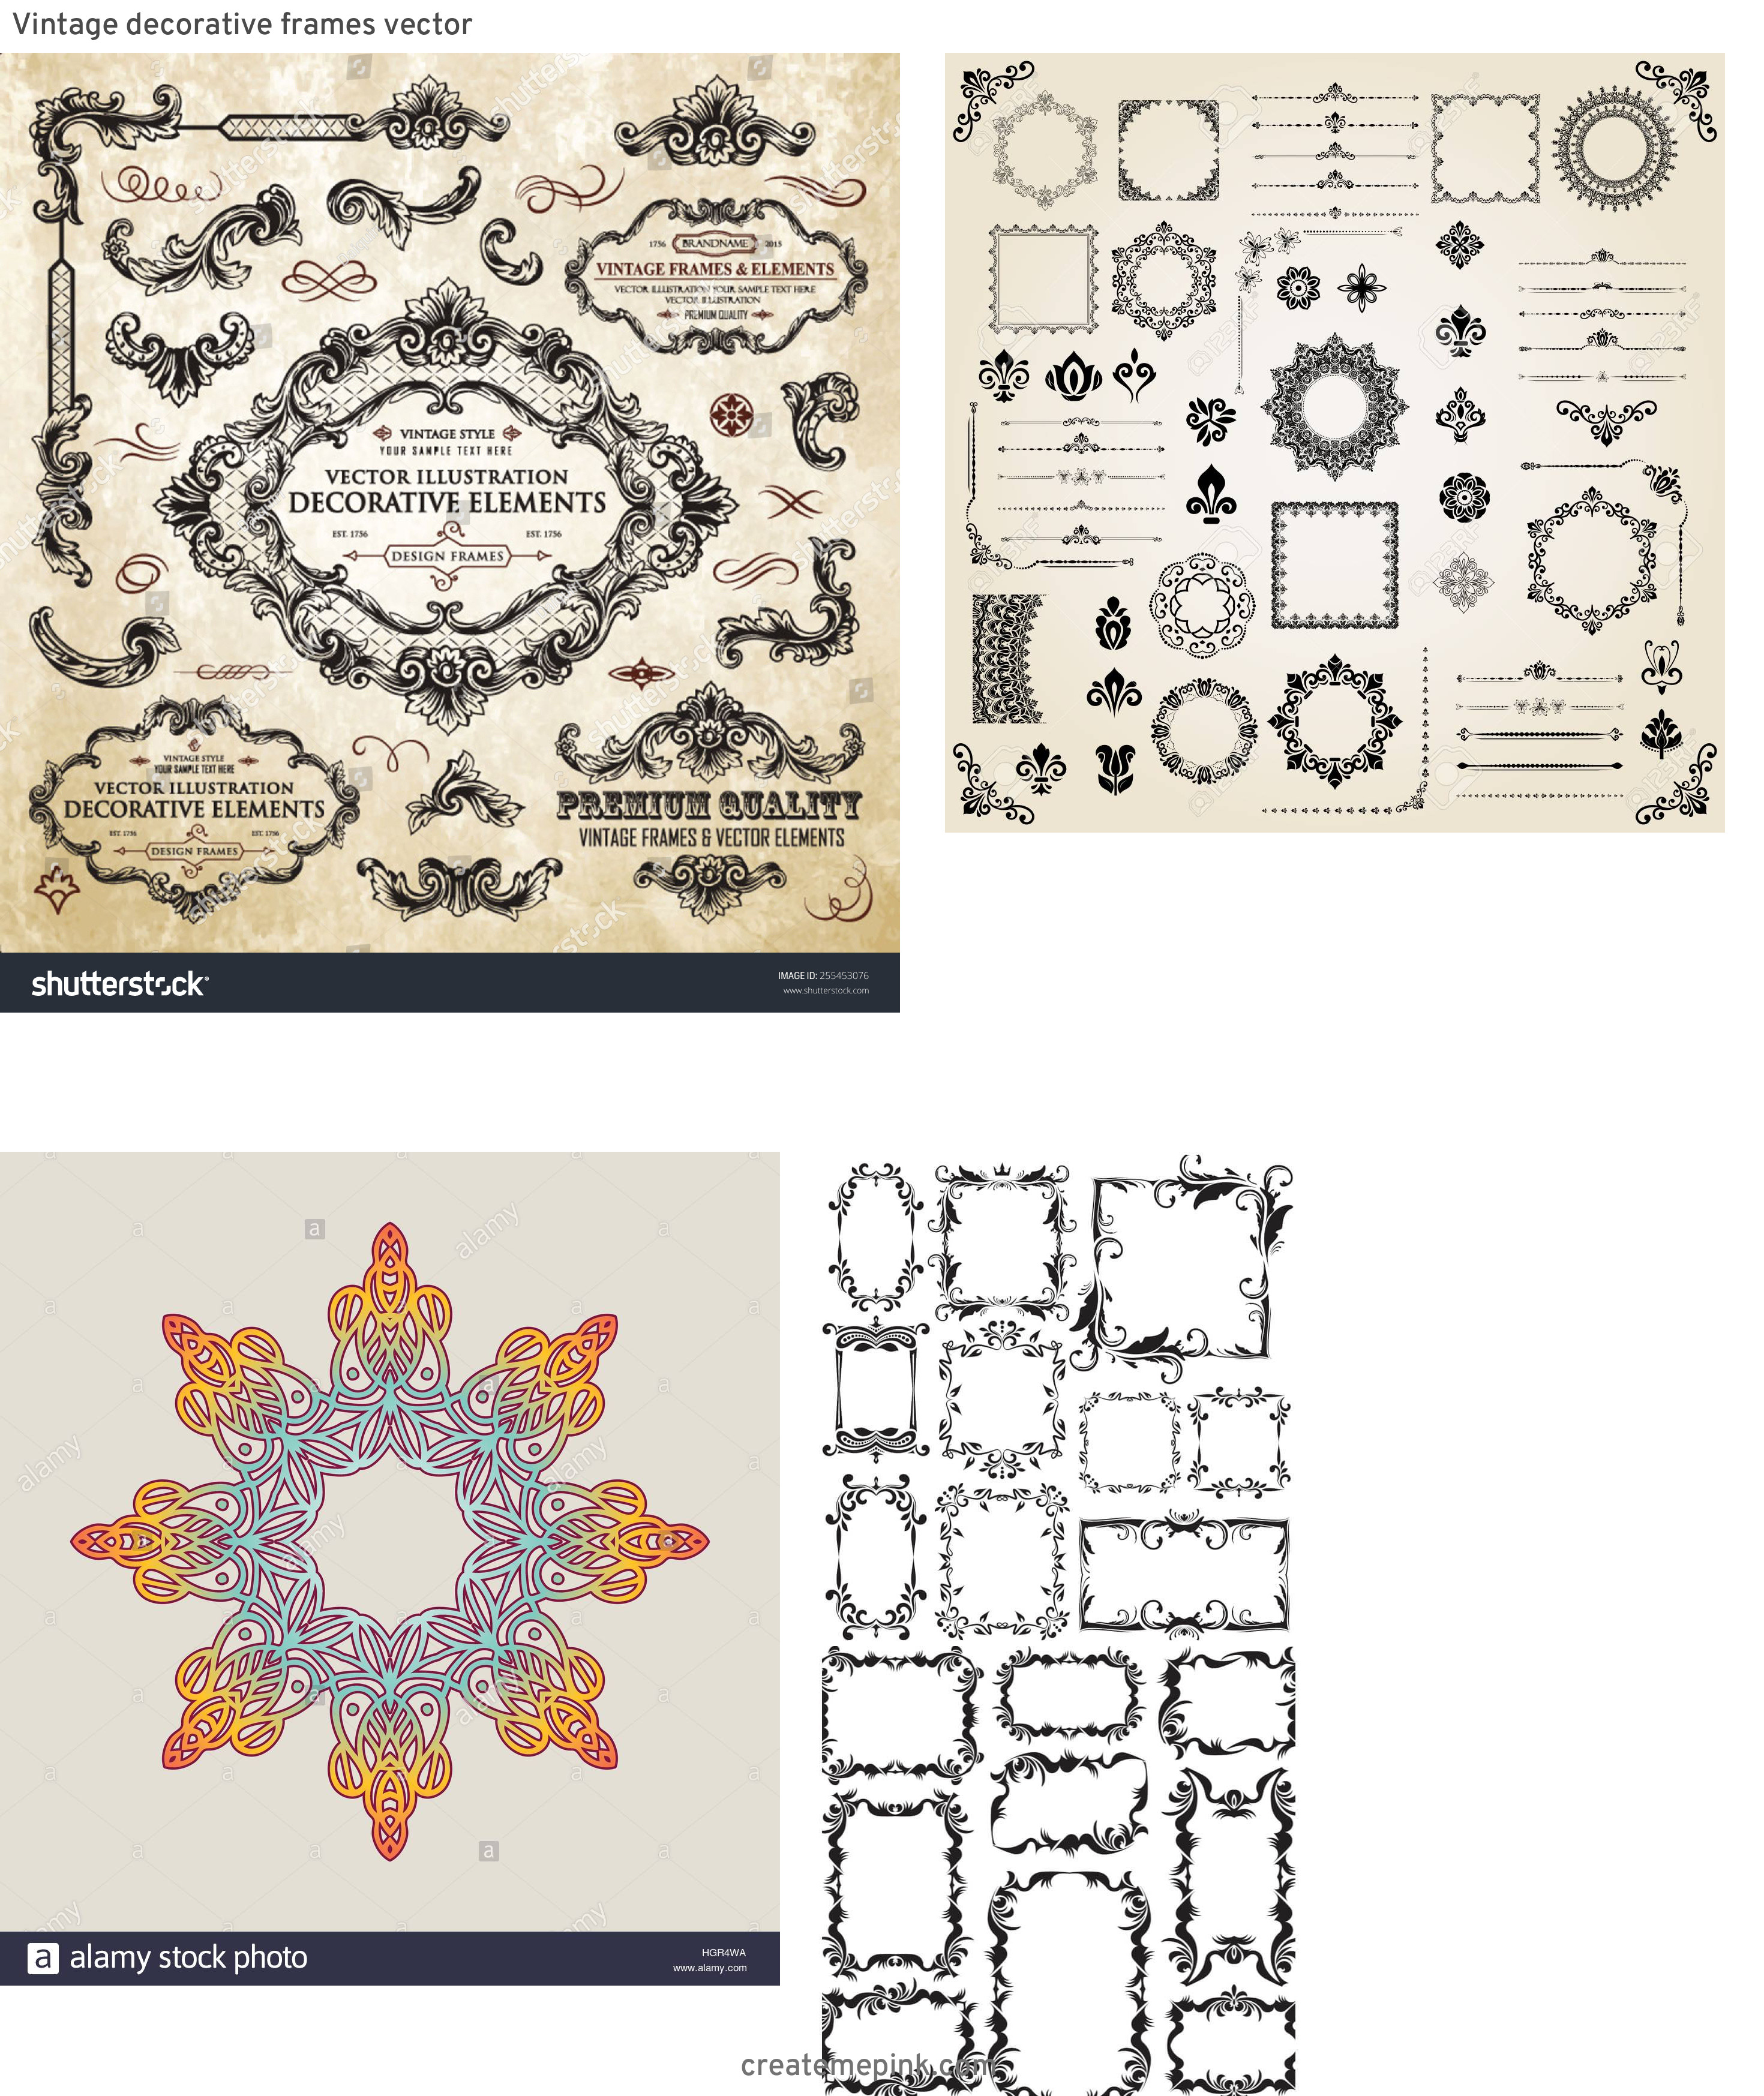 Elements Of Vector Vintage Decorative Frame: Vintage Decorative Frames Vector